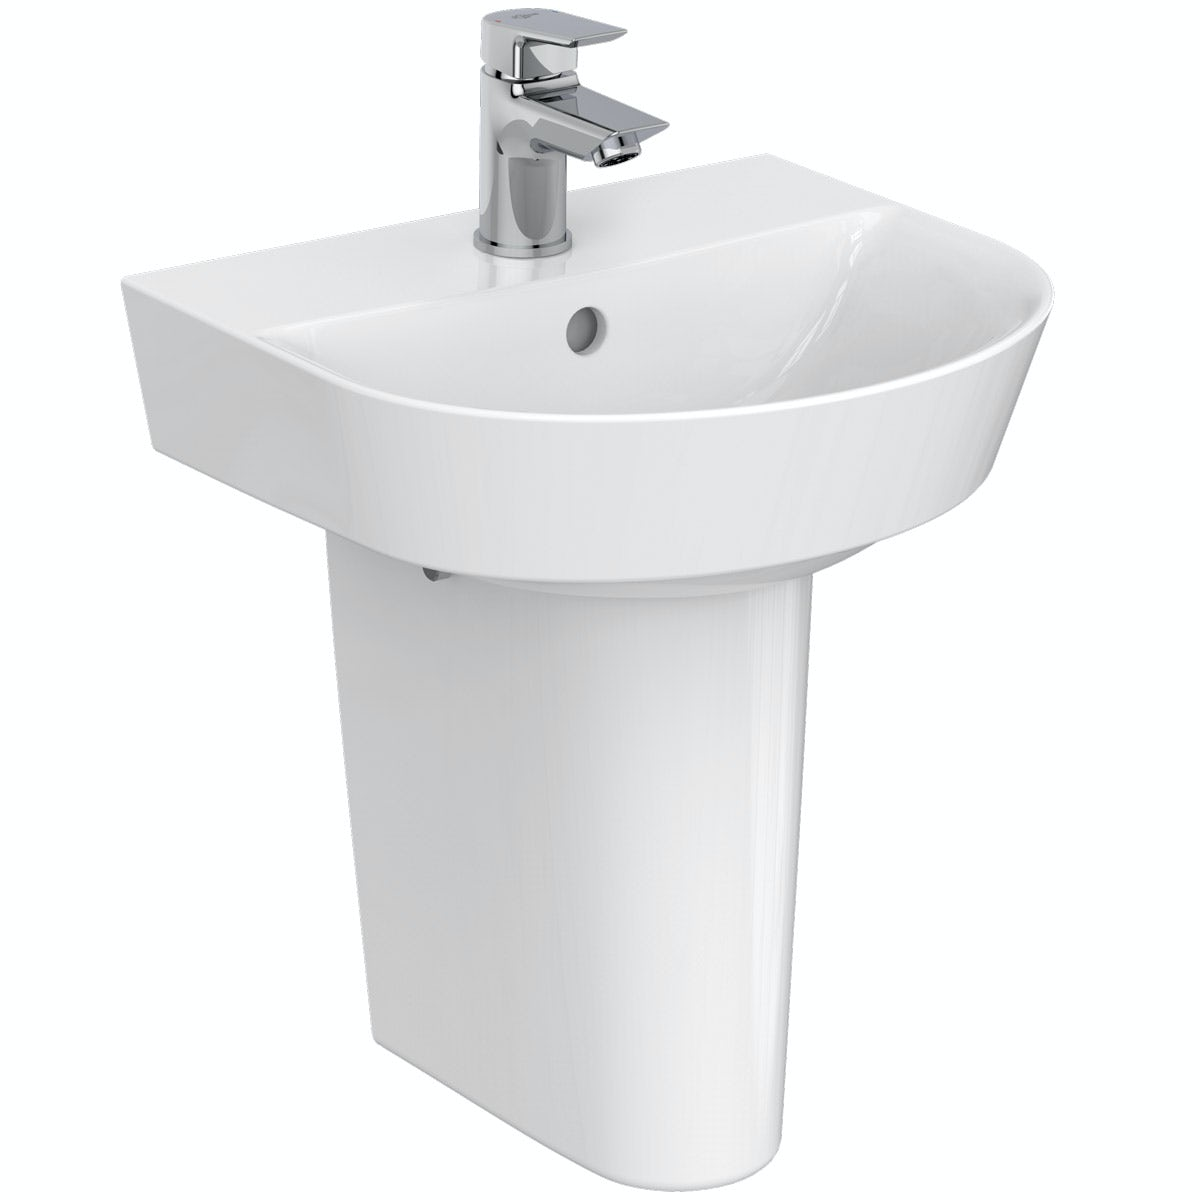 Ideal Standard Concept Air Arc 1 tap hole semi pedestal basin 400mm